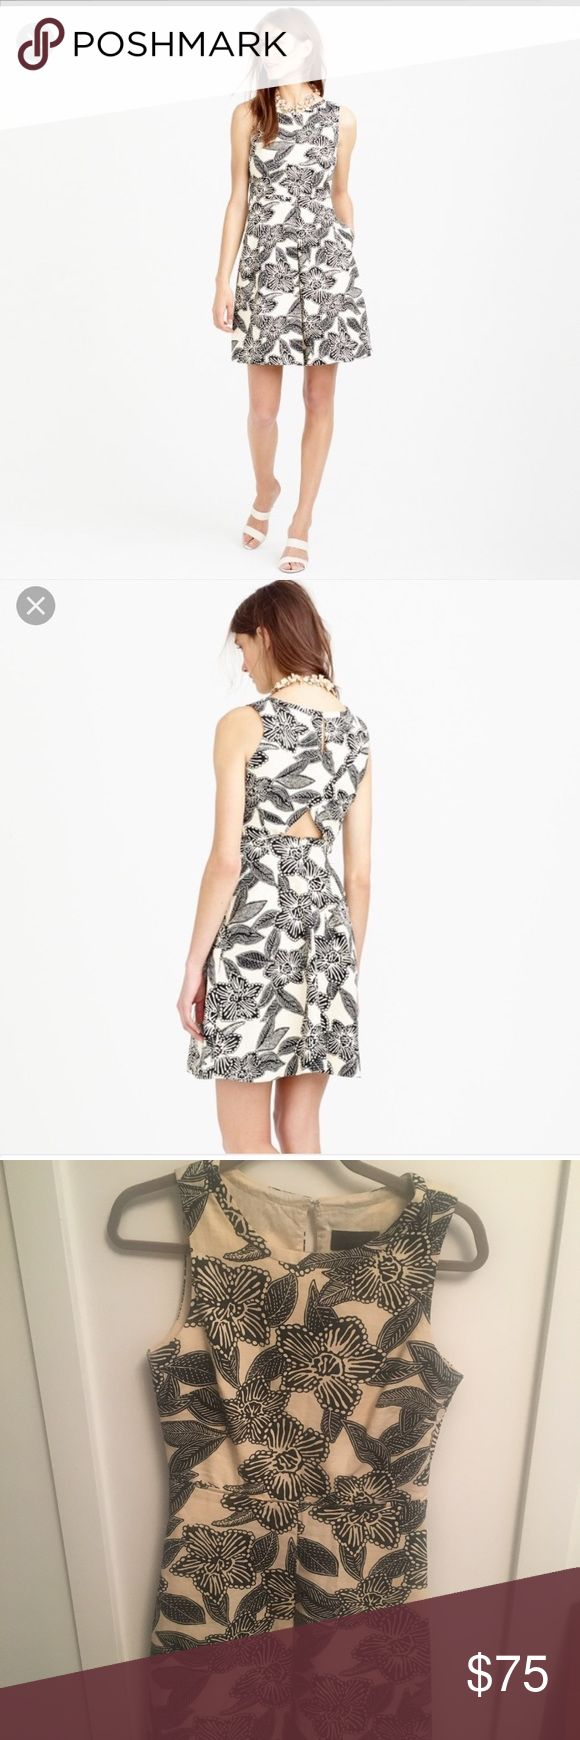 J. Crew Polynesian Dress Black and off white Polynesian print dress with fun cutout in the back! Size 2 and lightly worn. Falls above the knee. J. Crew Dresses Mini